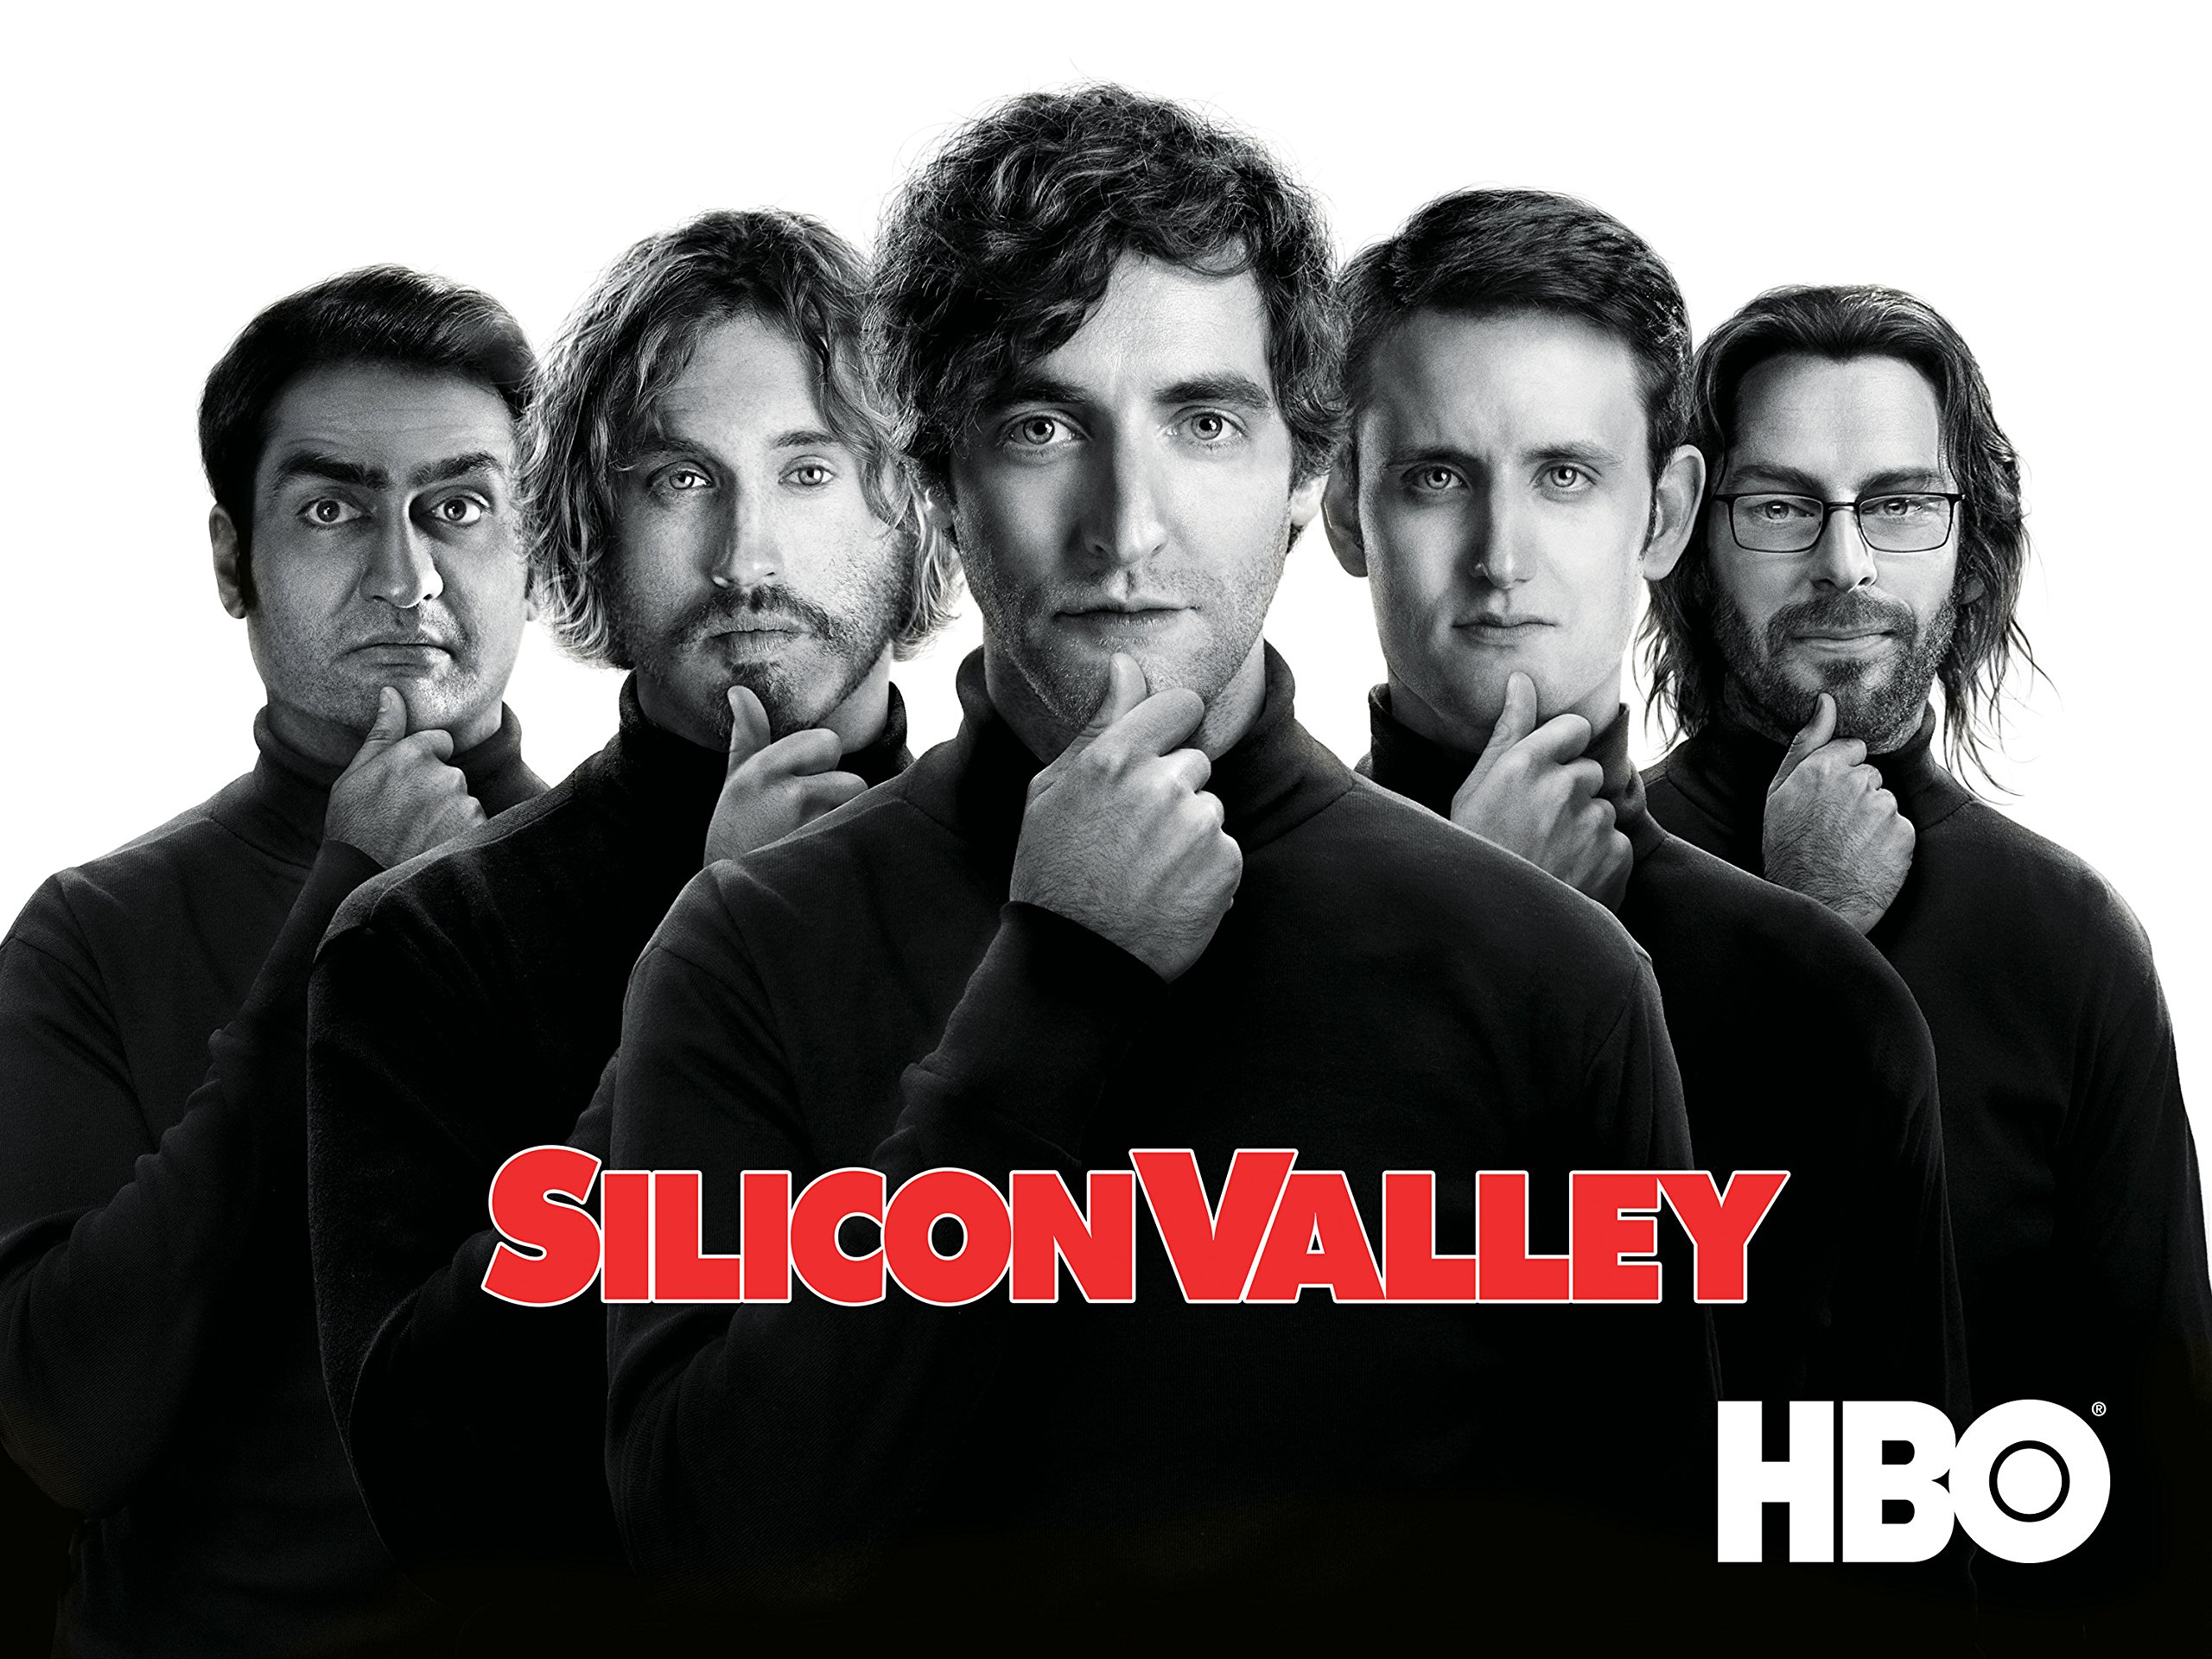 silicon valley s3e1 subtitles